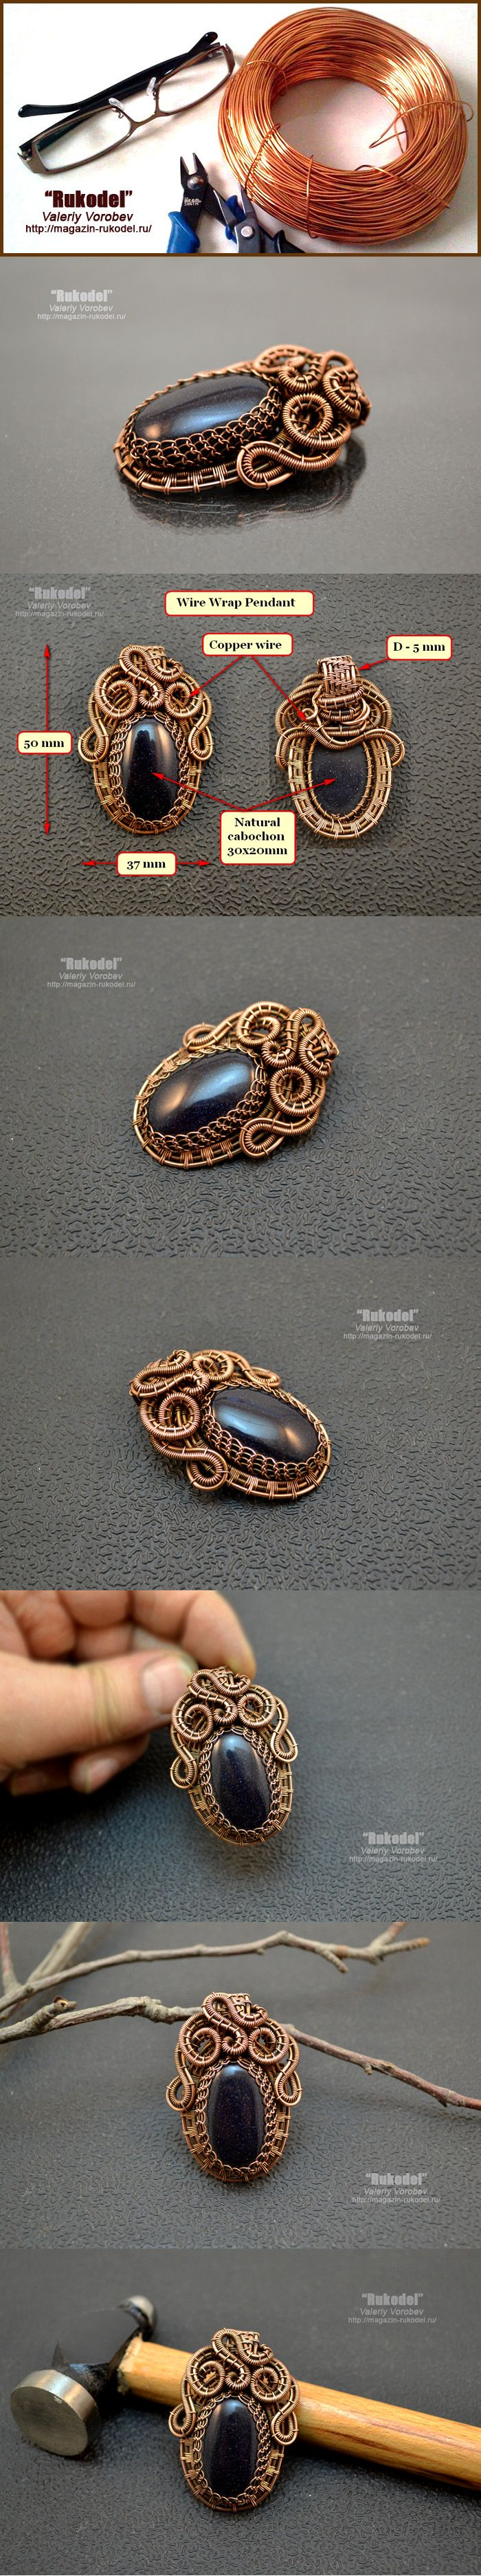 1510 best wire lovely wire images on Pinterest   Wire wrapped ...